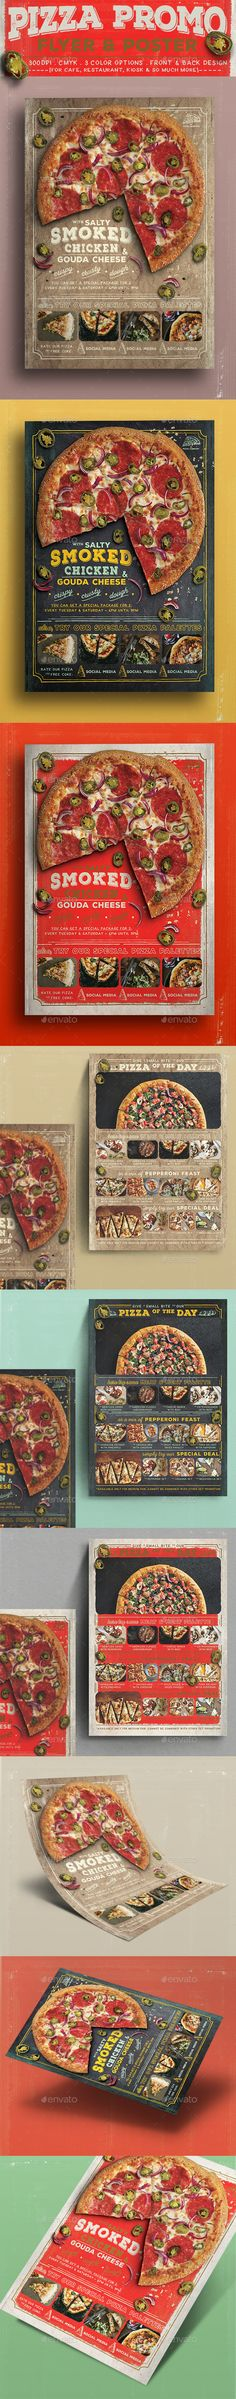 Pizza Restaurant Menu Flyer A4 | Pizza Restaurant, Menu And Pizzas